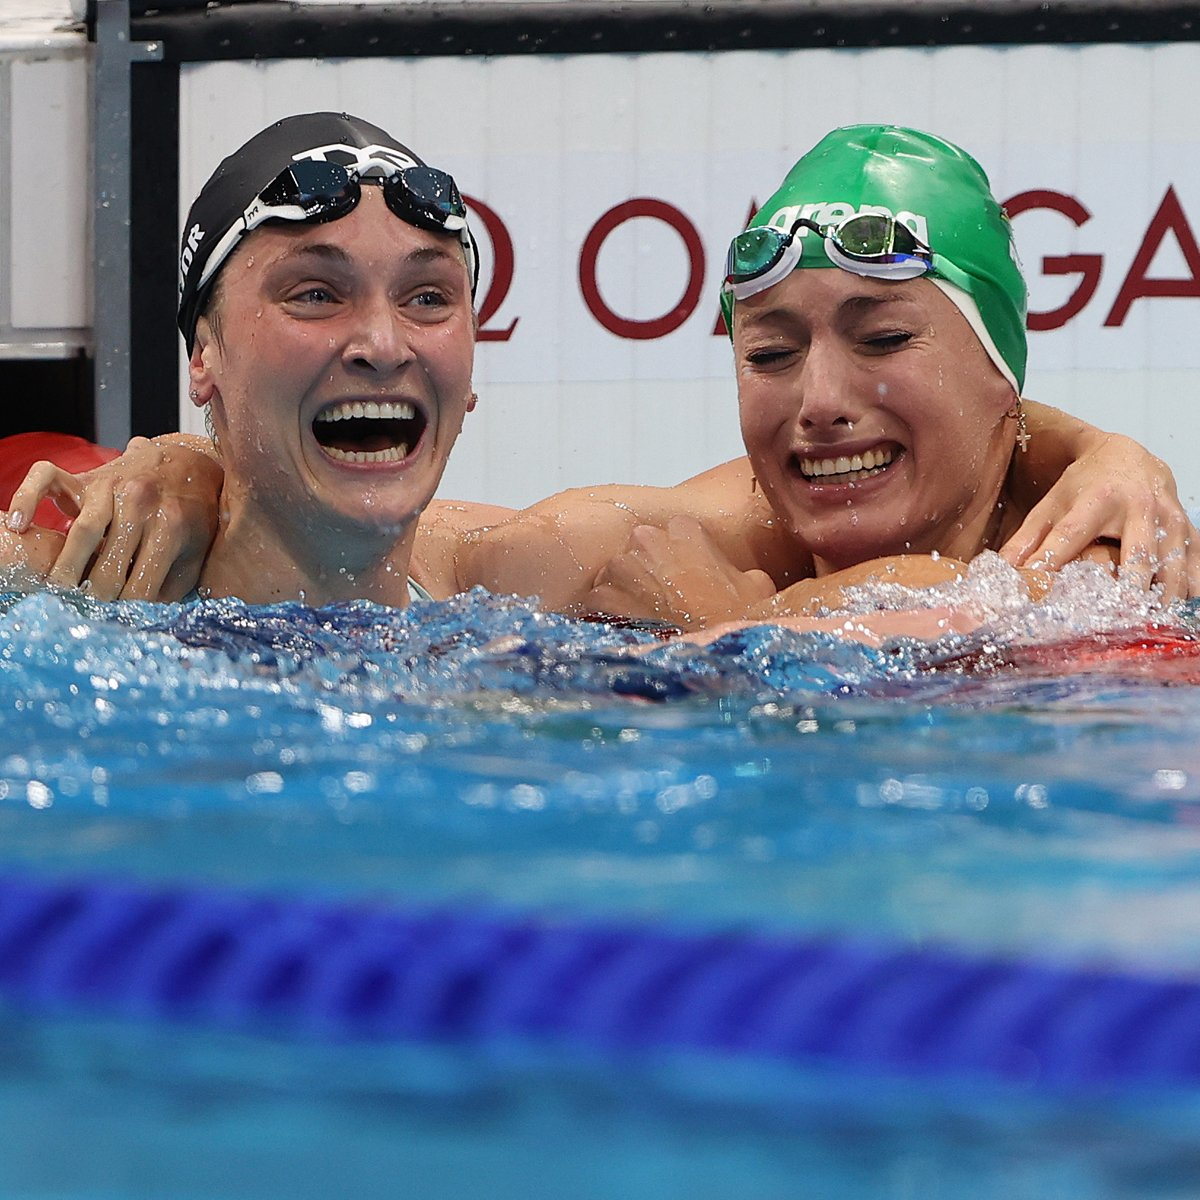 The Story Behind Olympic Swimmer Annie Lazor's Bronze Medal Will Break Your Heart